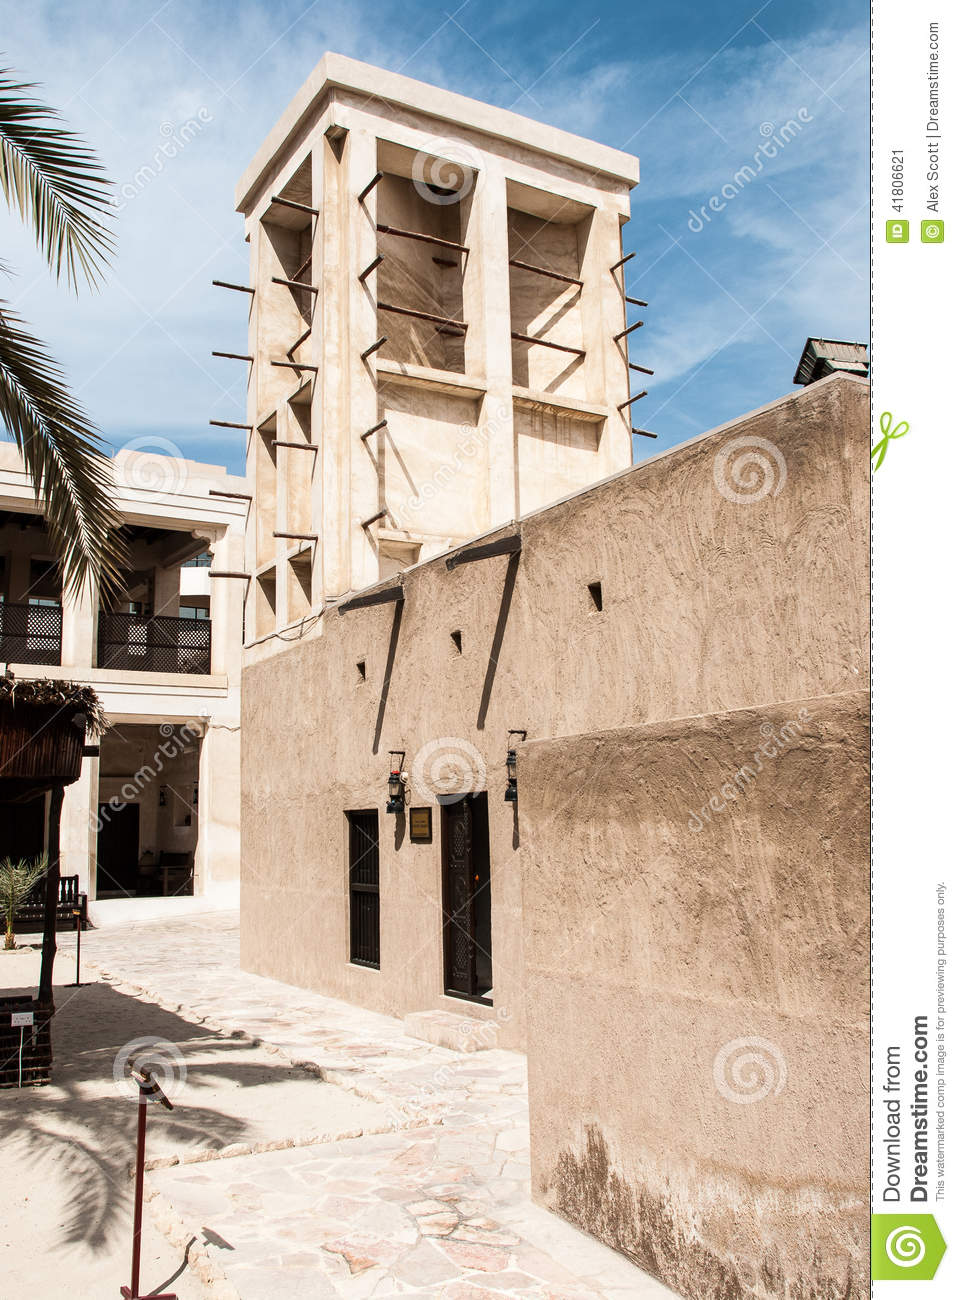 traditional arab house with wind tower stock photo